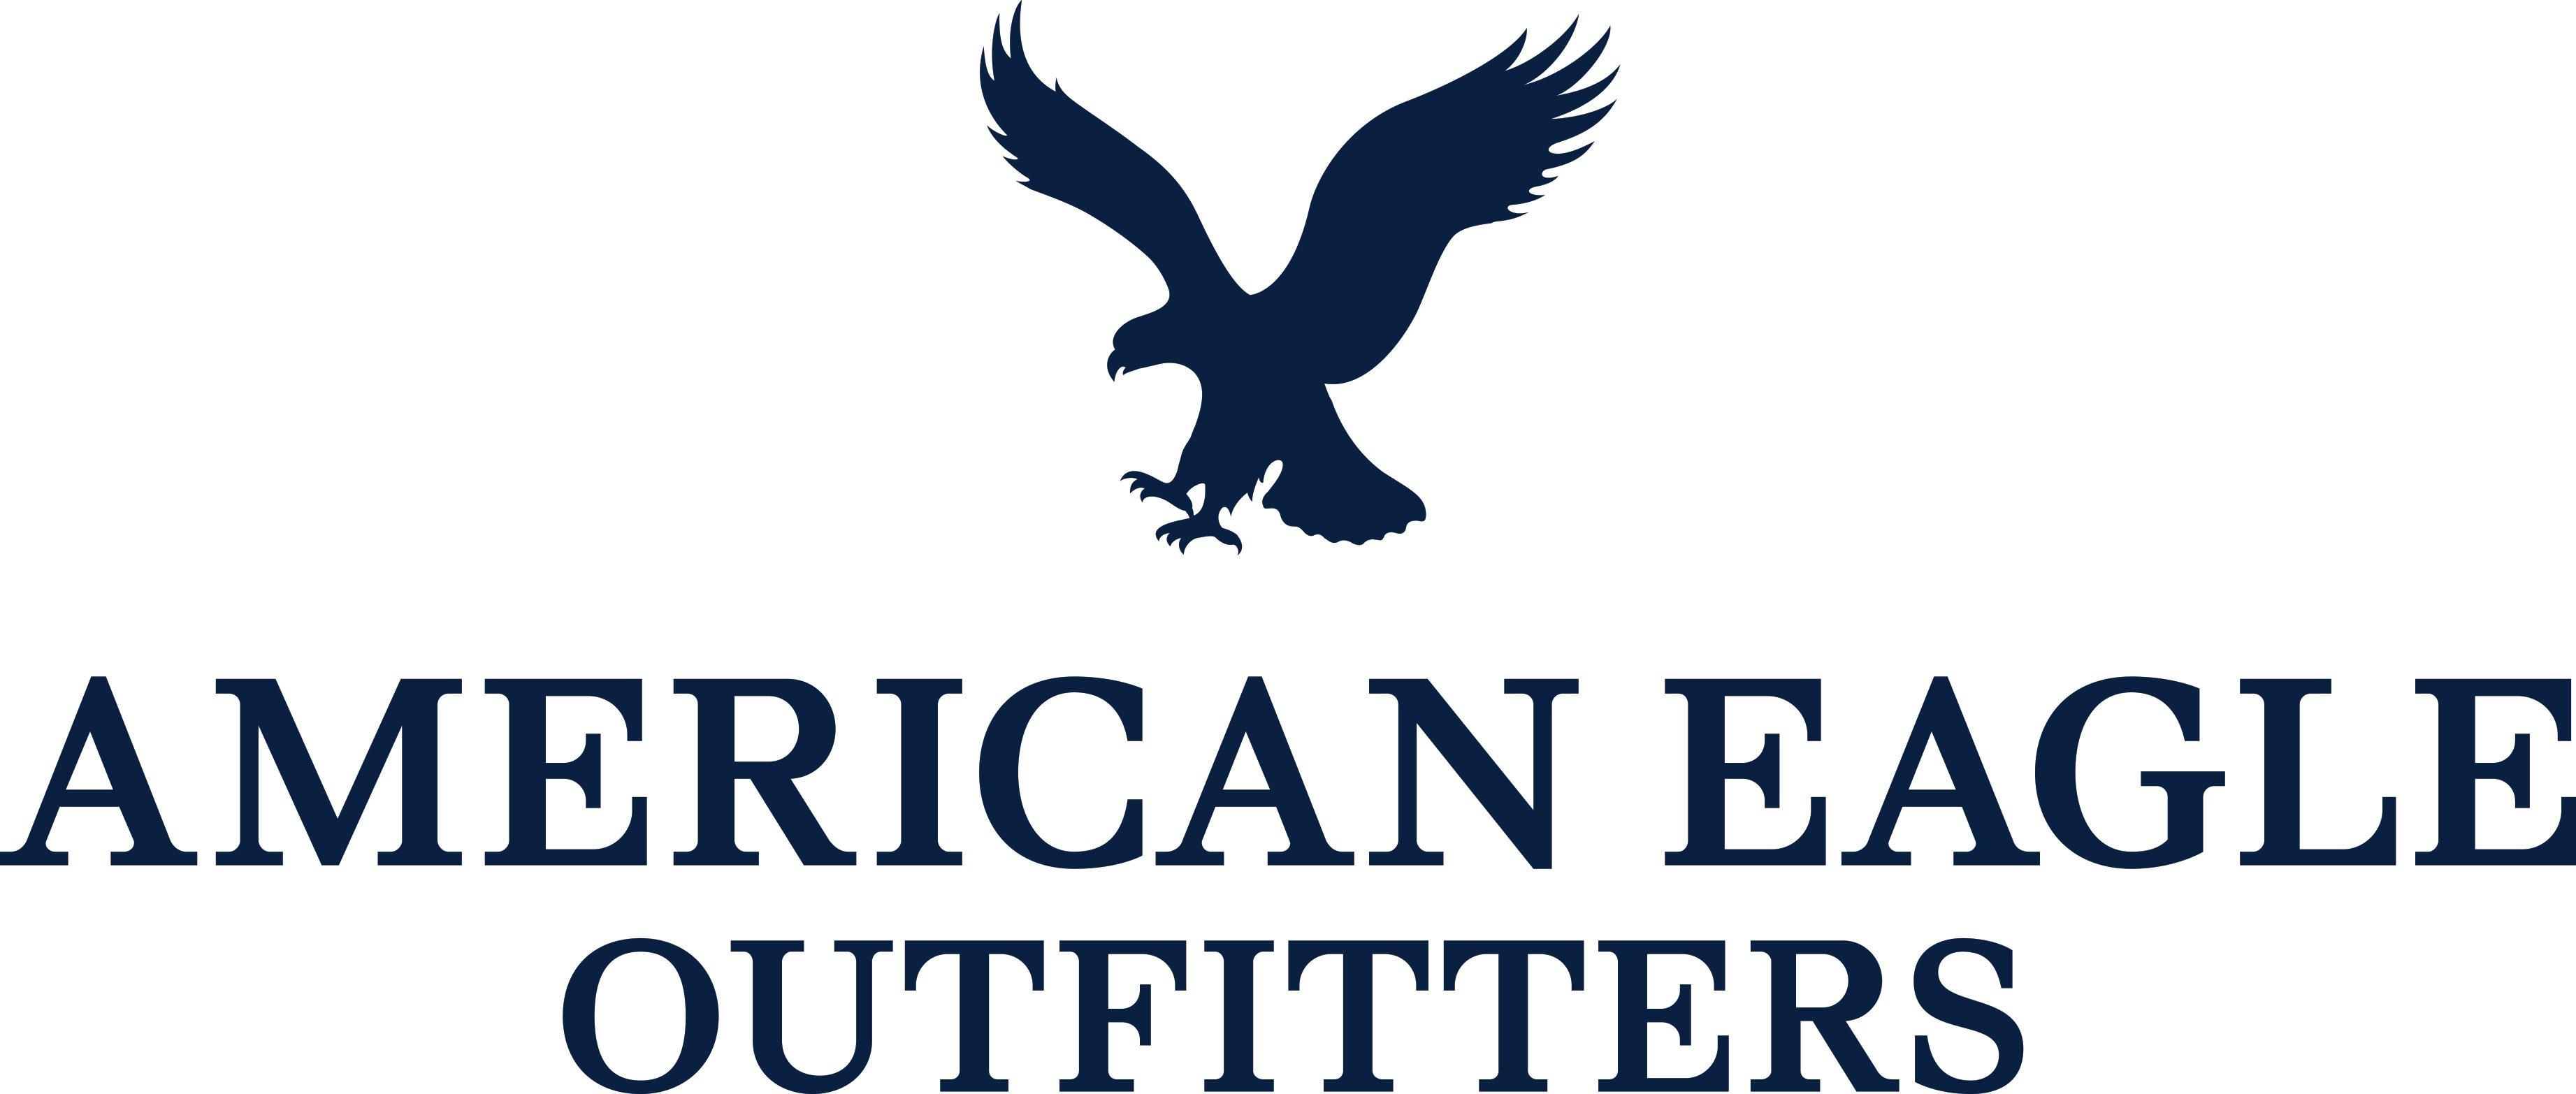 American Eagle Soars and Cashless Payments Pose a Threat